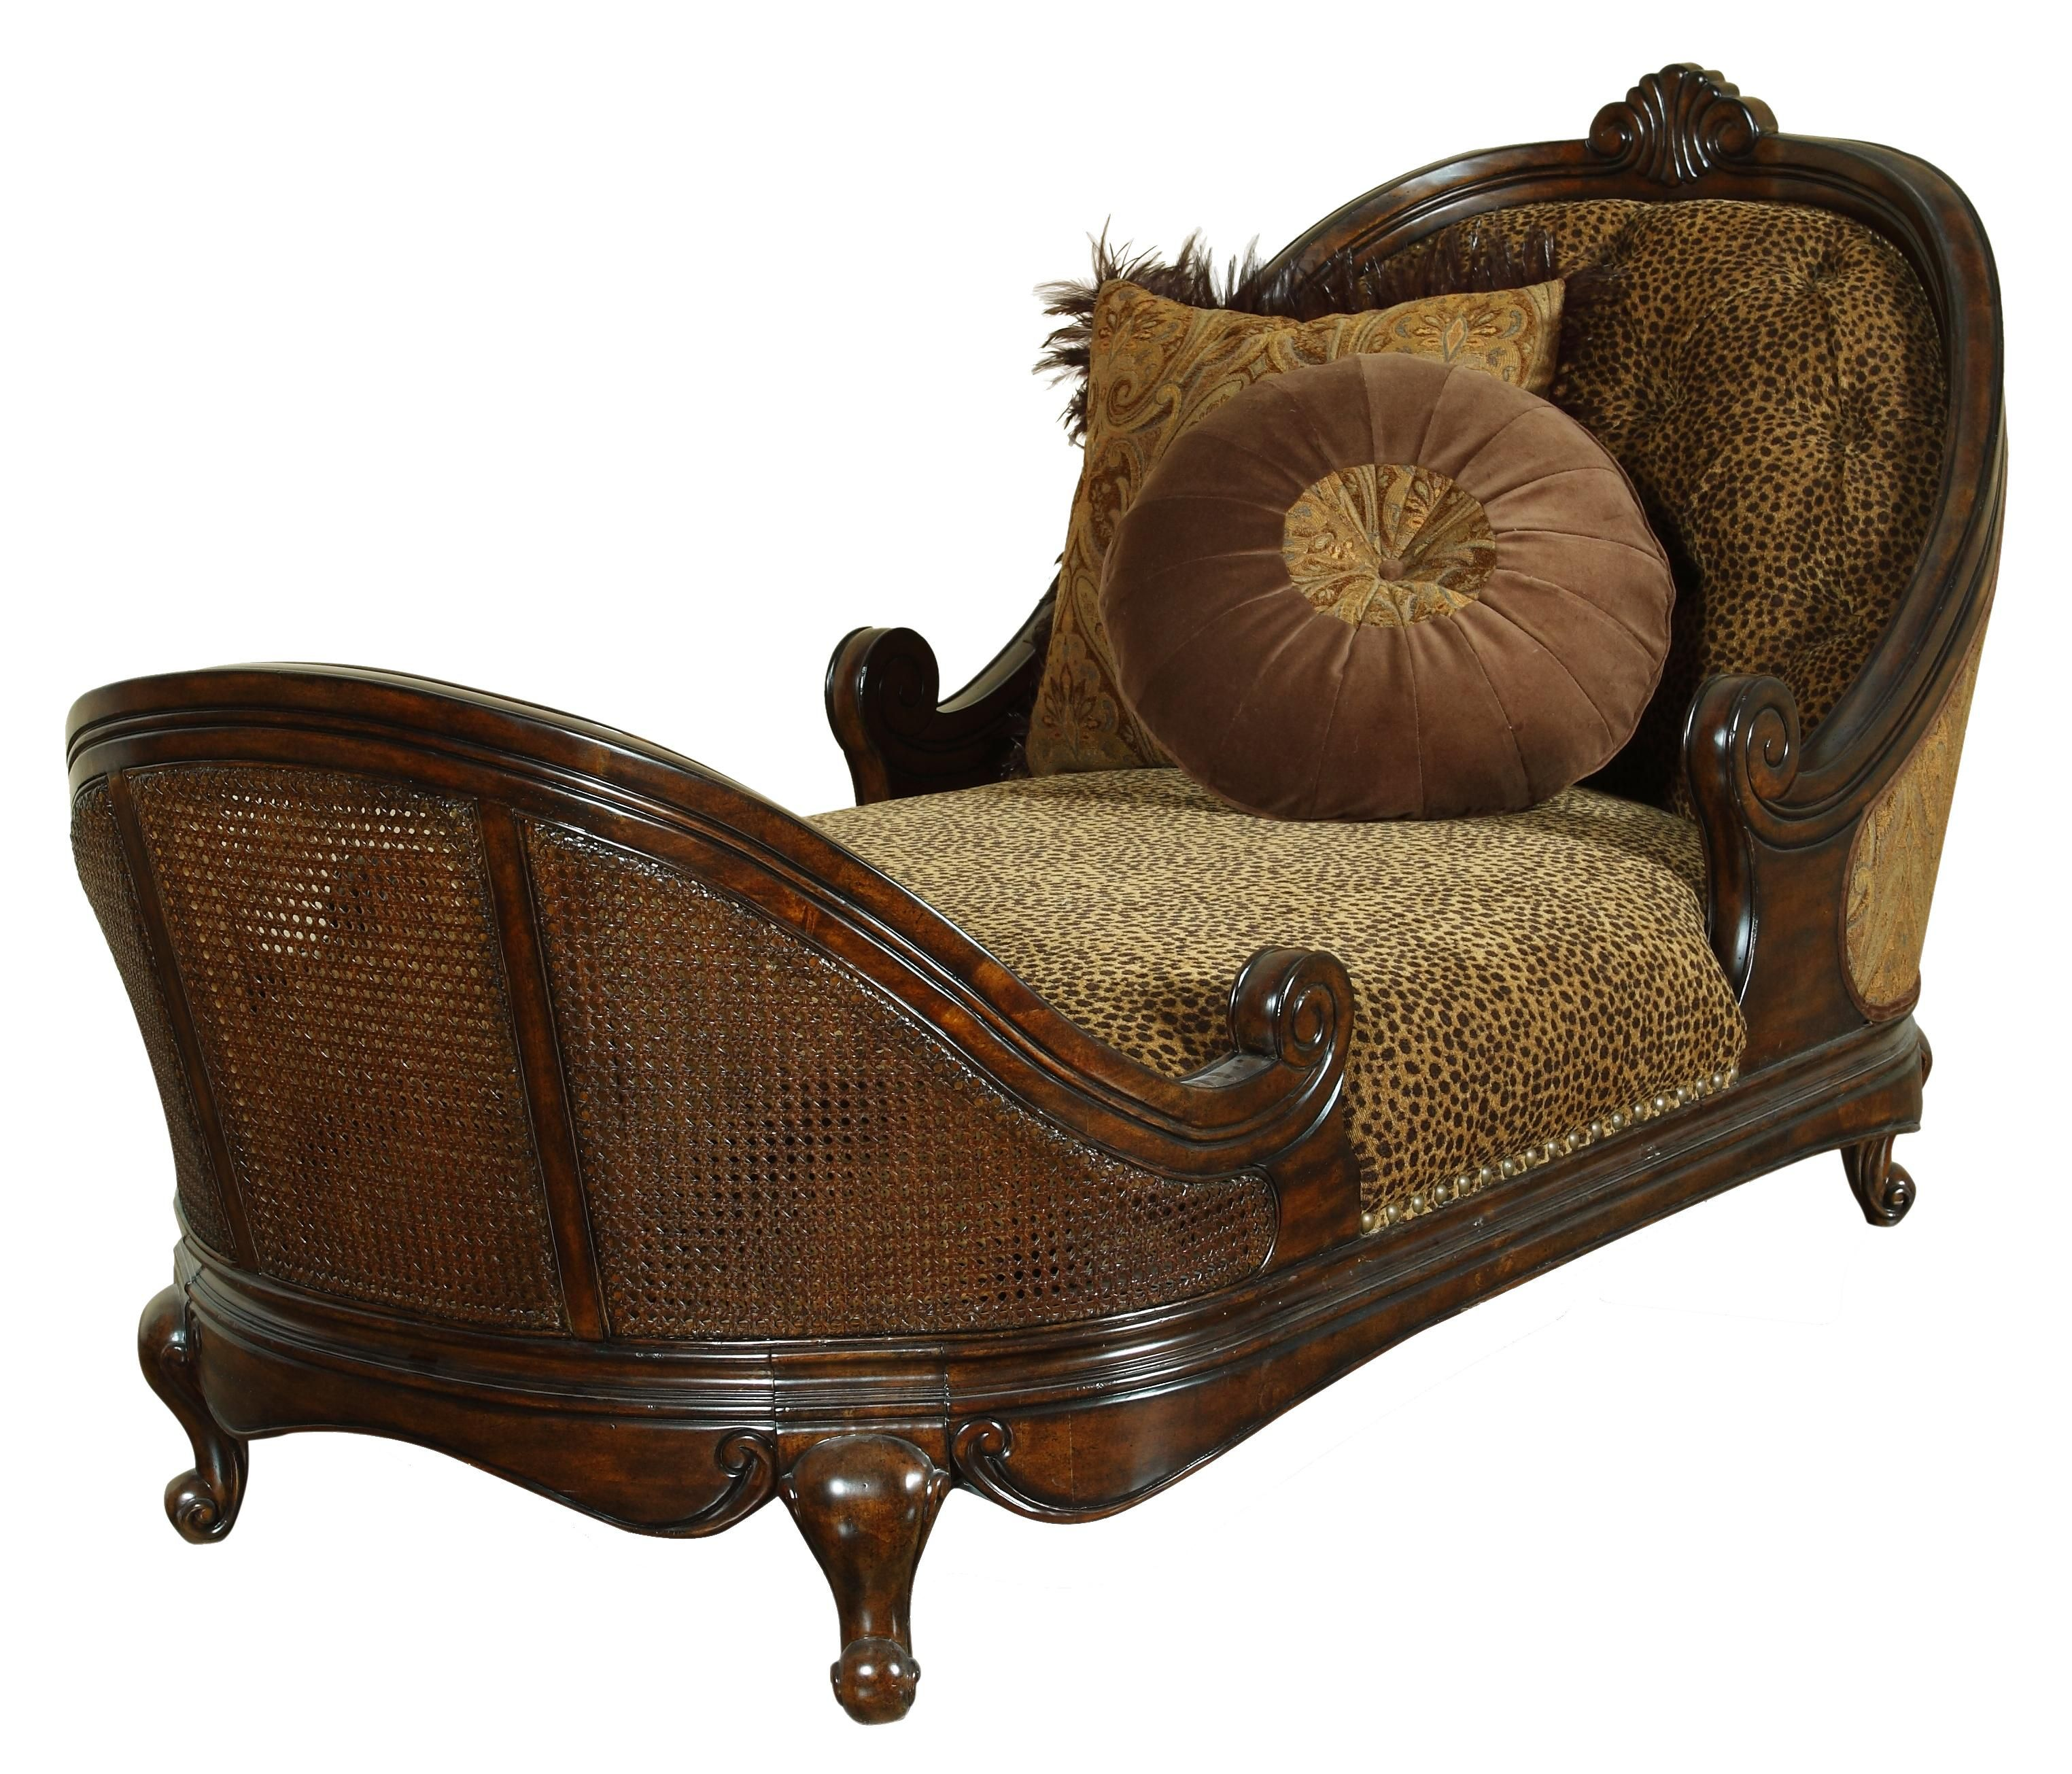 If I bought a chaise on its own I would buy this one.